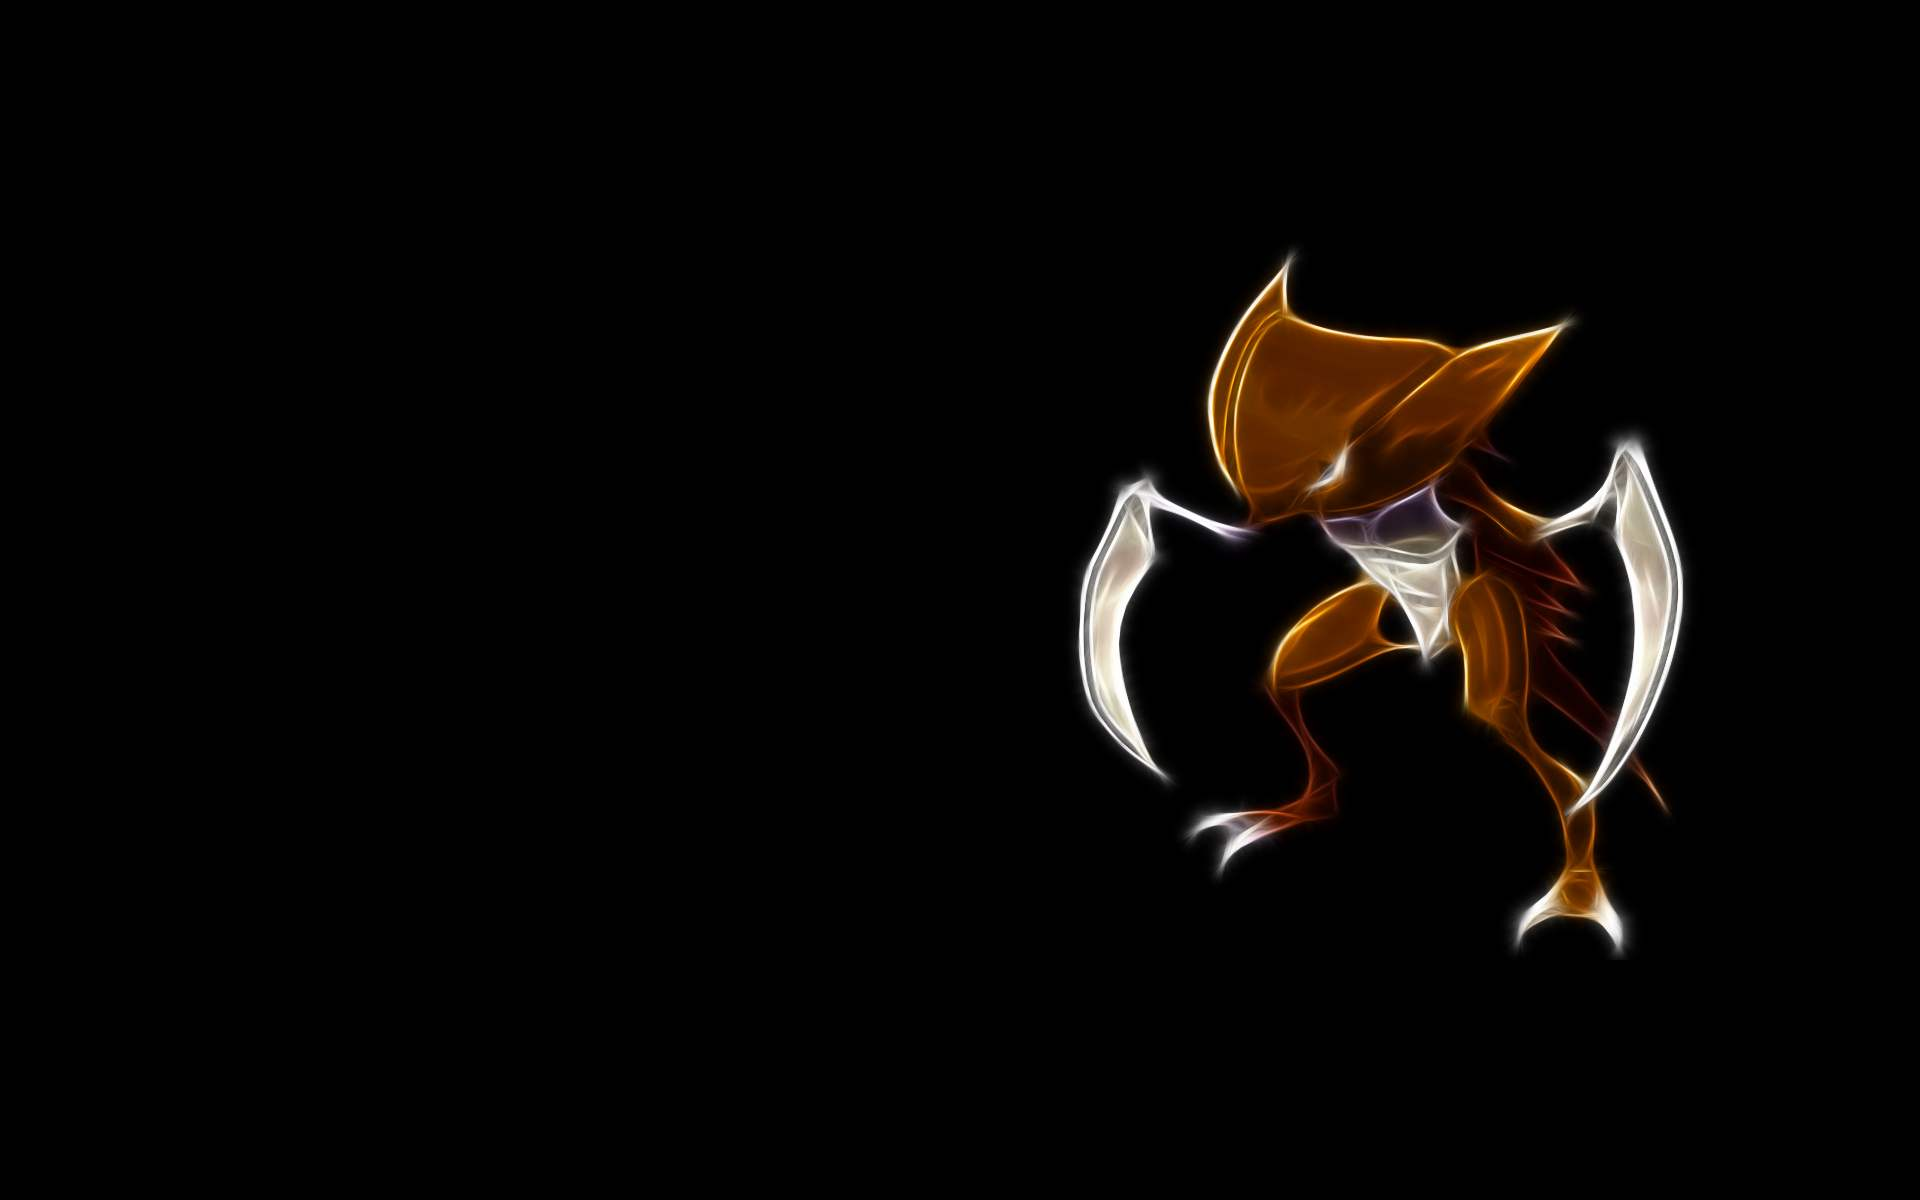 Kabutops Hd wallpaper   717736 1920x1200